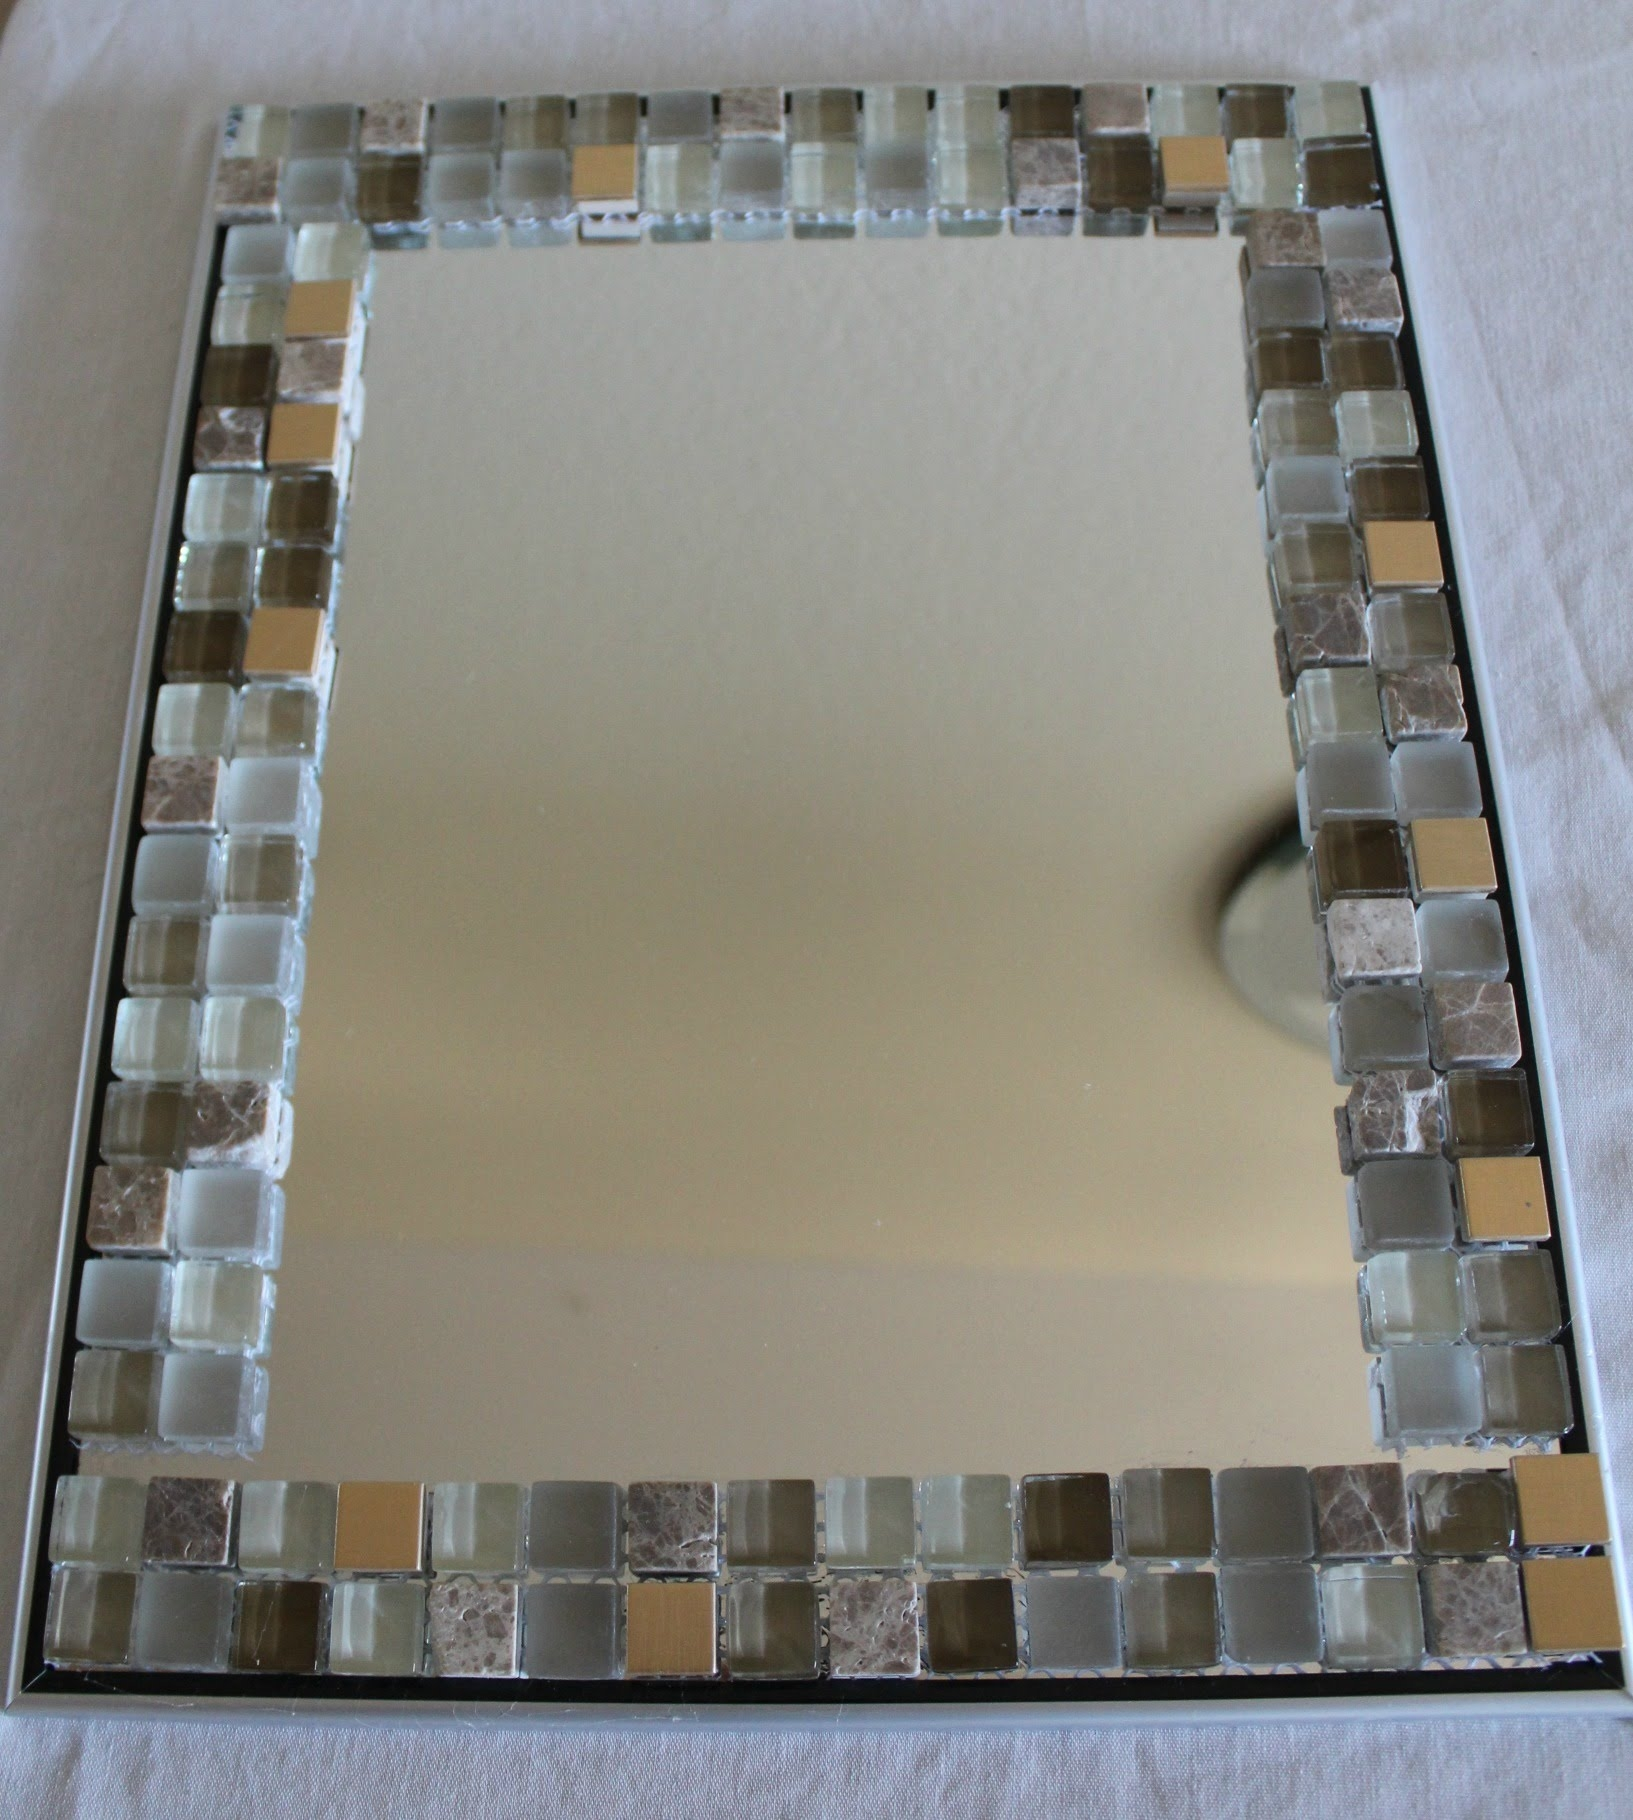 Glass Tile Framed Bathroom Mirror